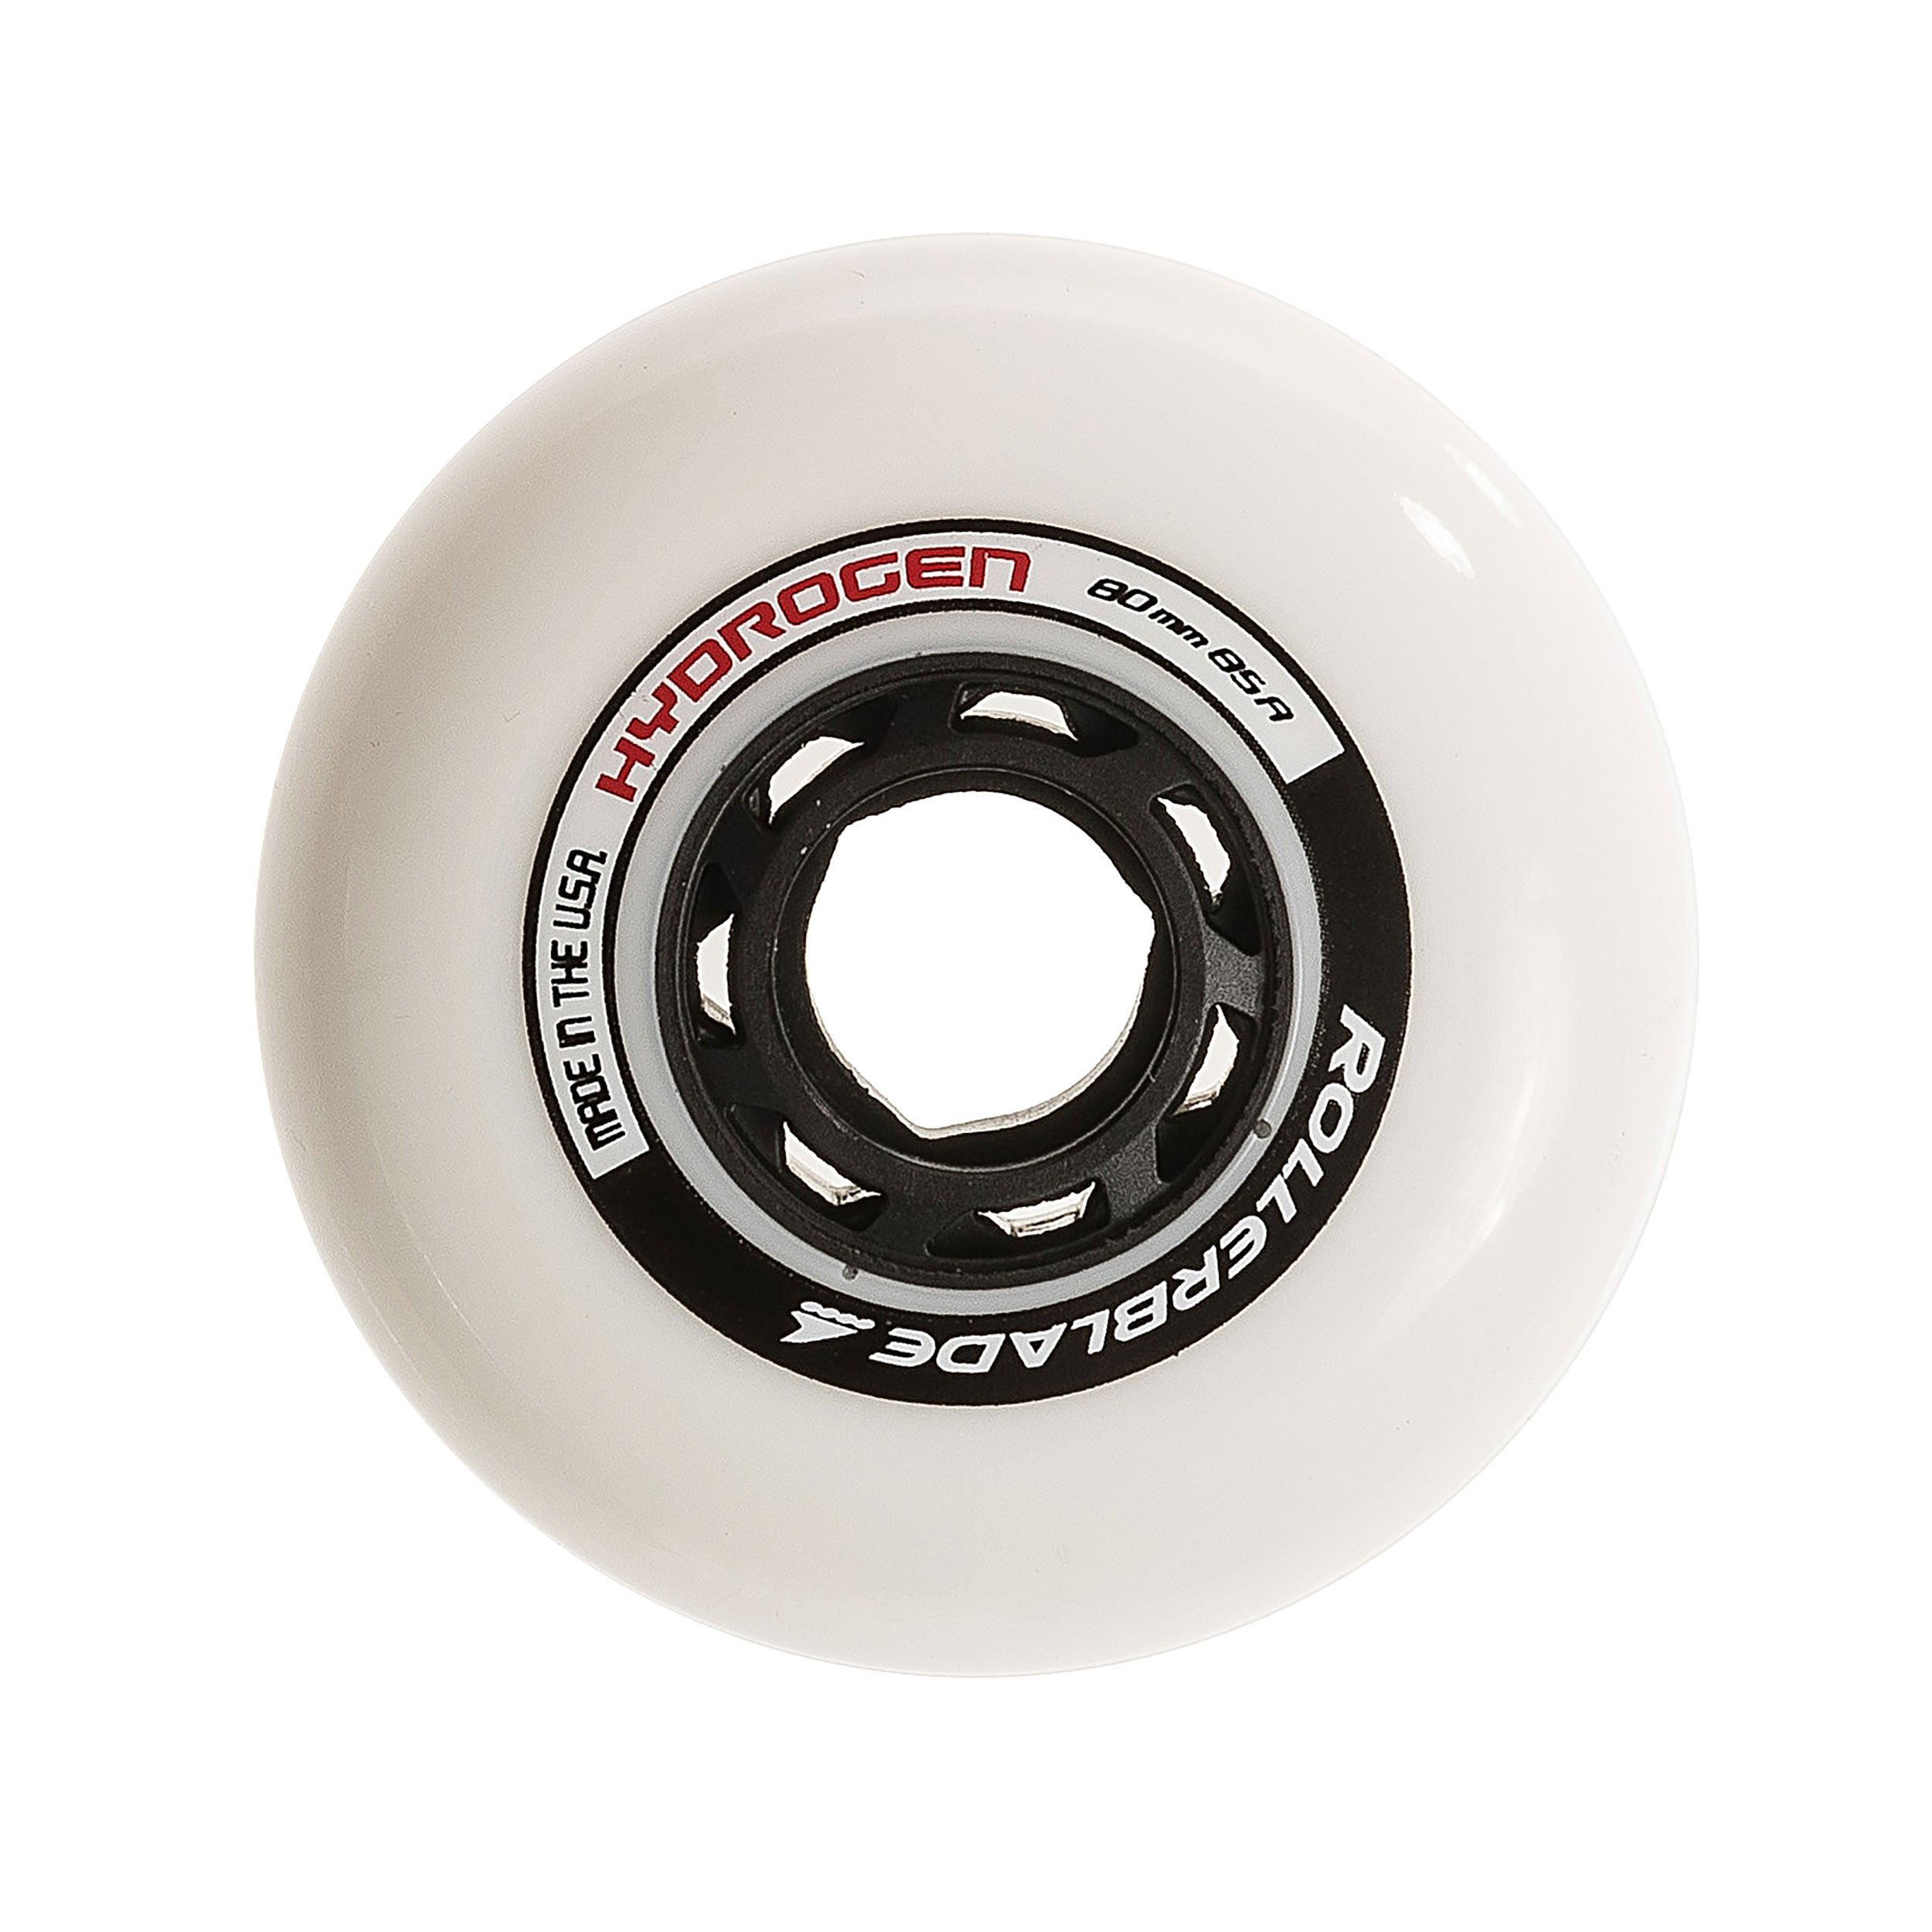 Rollerblade Hydrogen 80mm 85A Wheels (8 Pack), White, One Size by Rollerblade